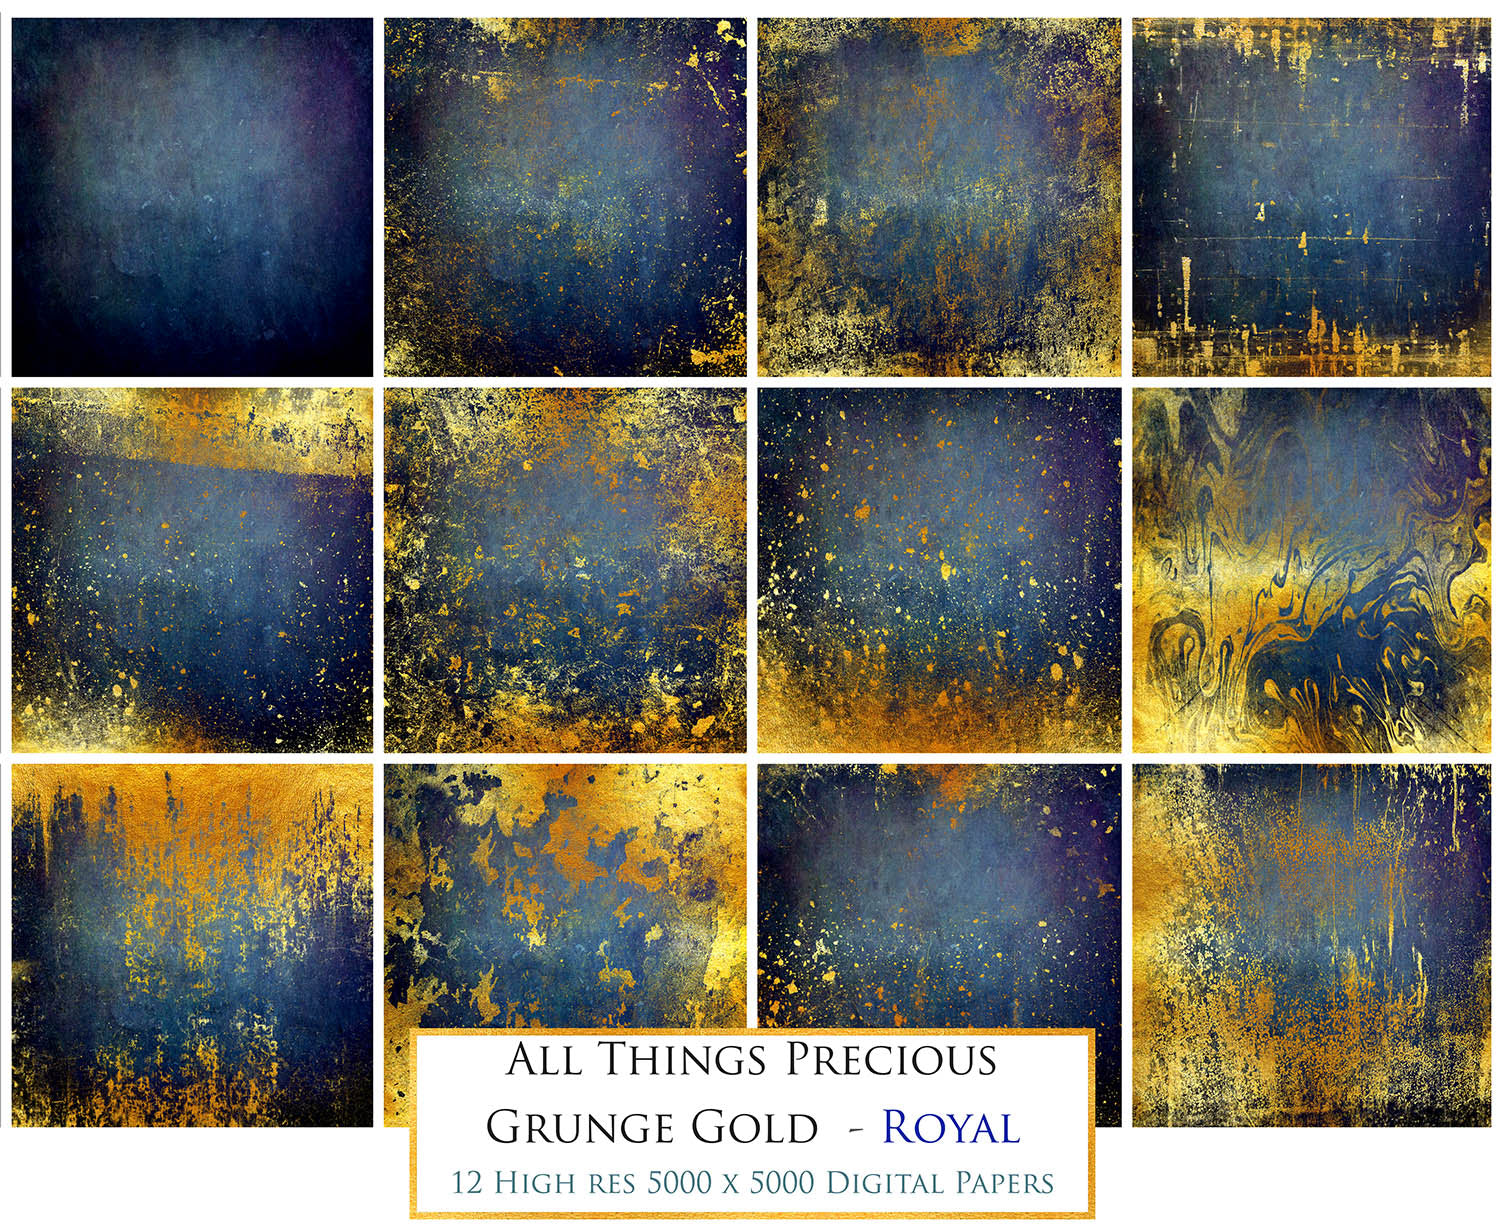 GRUNGE GOLD - ROYAL  Digital Papers